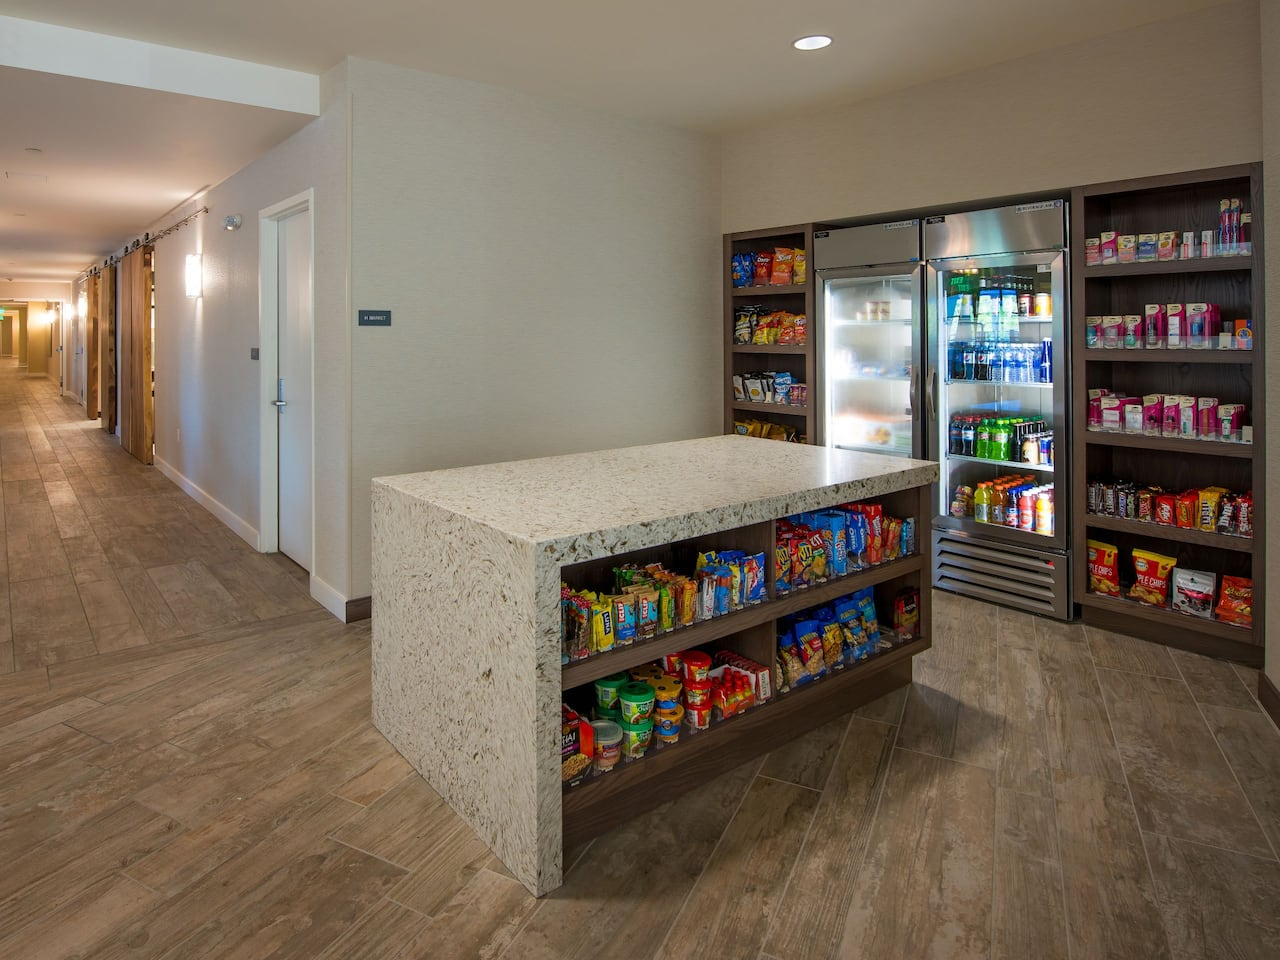 Hyatt House Naples / 5th Avenue H Market